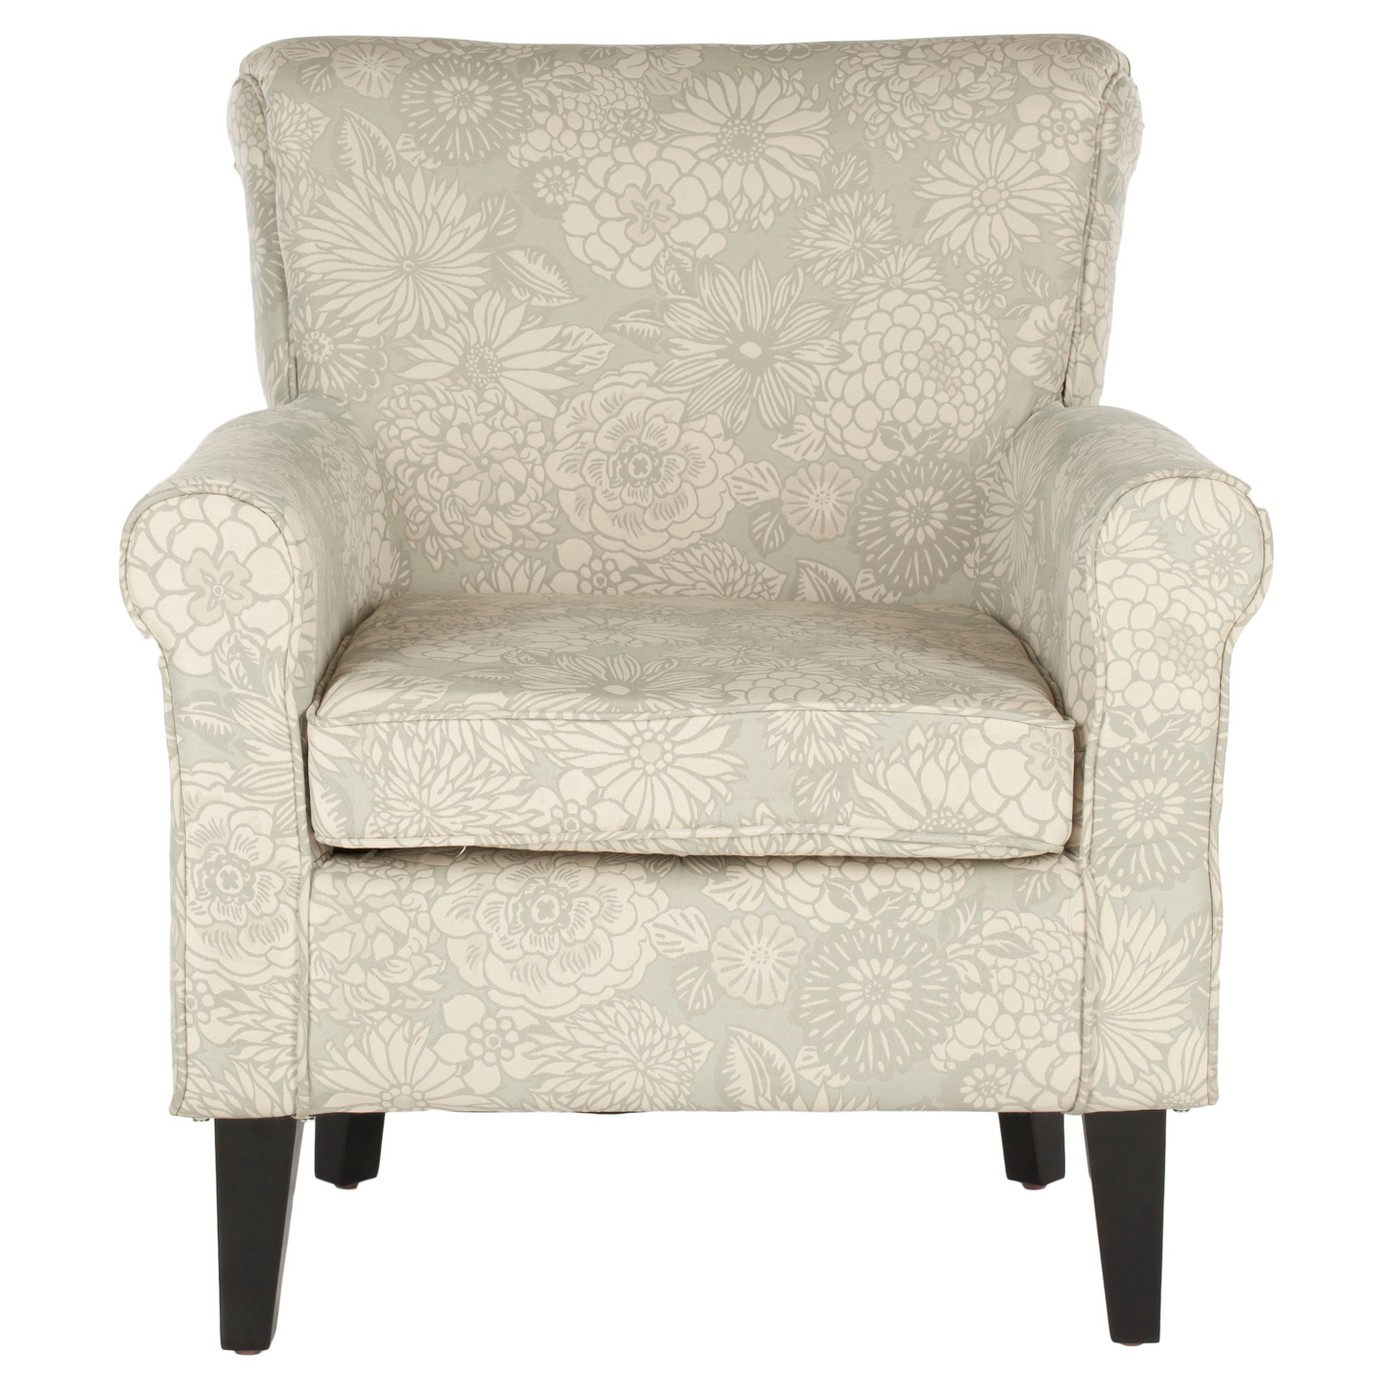 Safavieh Mercer Collection Margaret Ivory & Sage Floral Club Chair